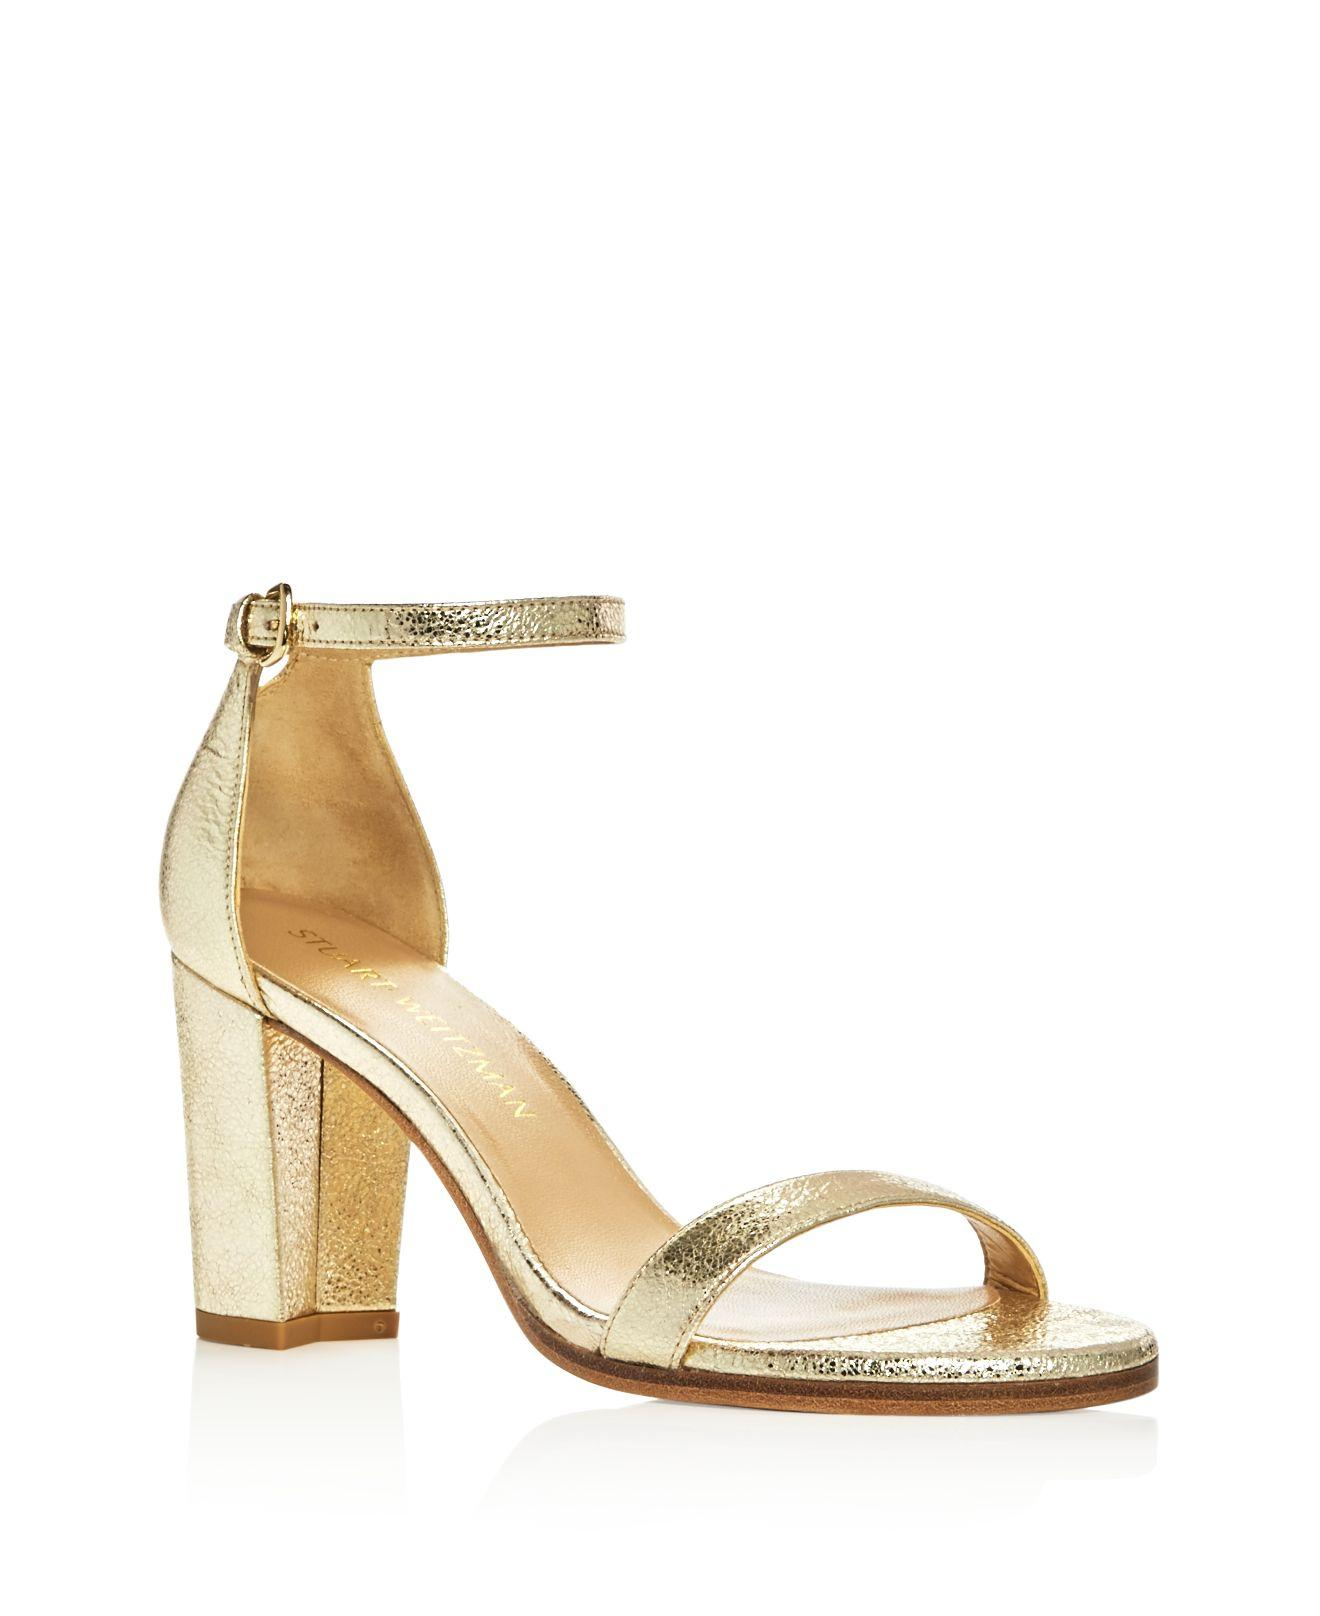 Gianvito Rossi Suede Nude City Sandal in Natural - Lyst